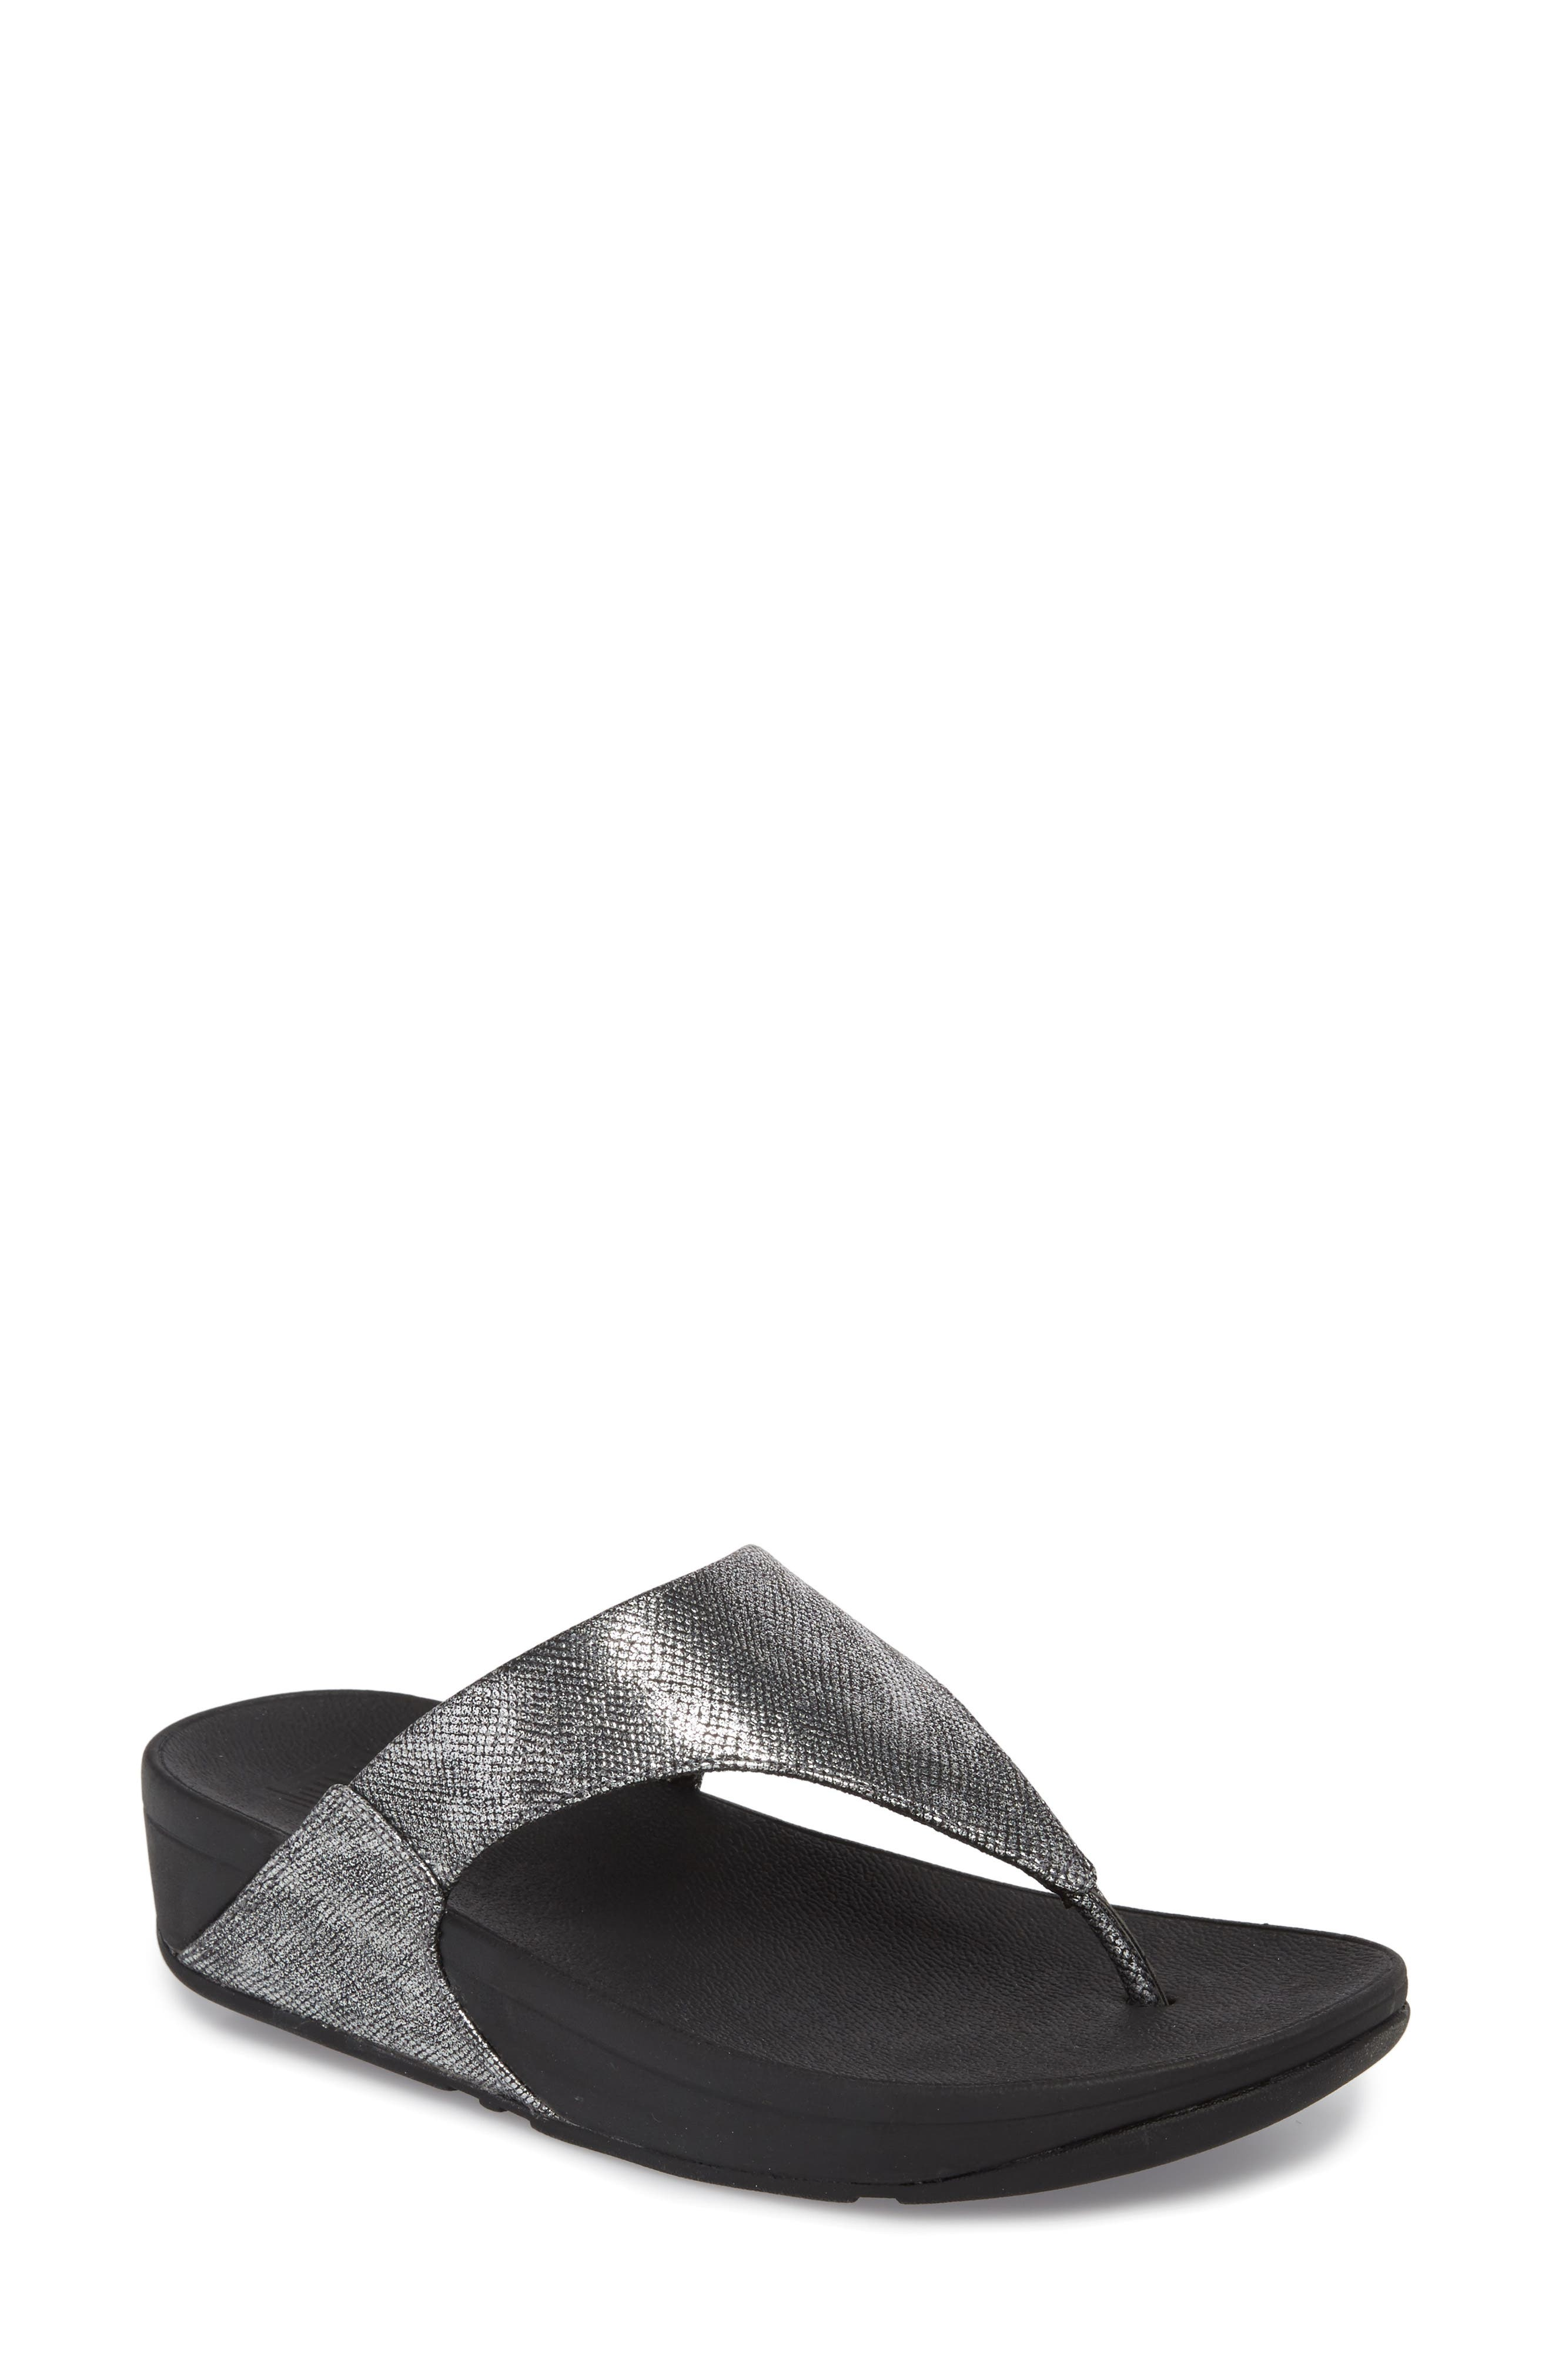 FITFLOP Lulu Thong Sandal, Main, color, 004